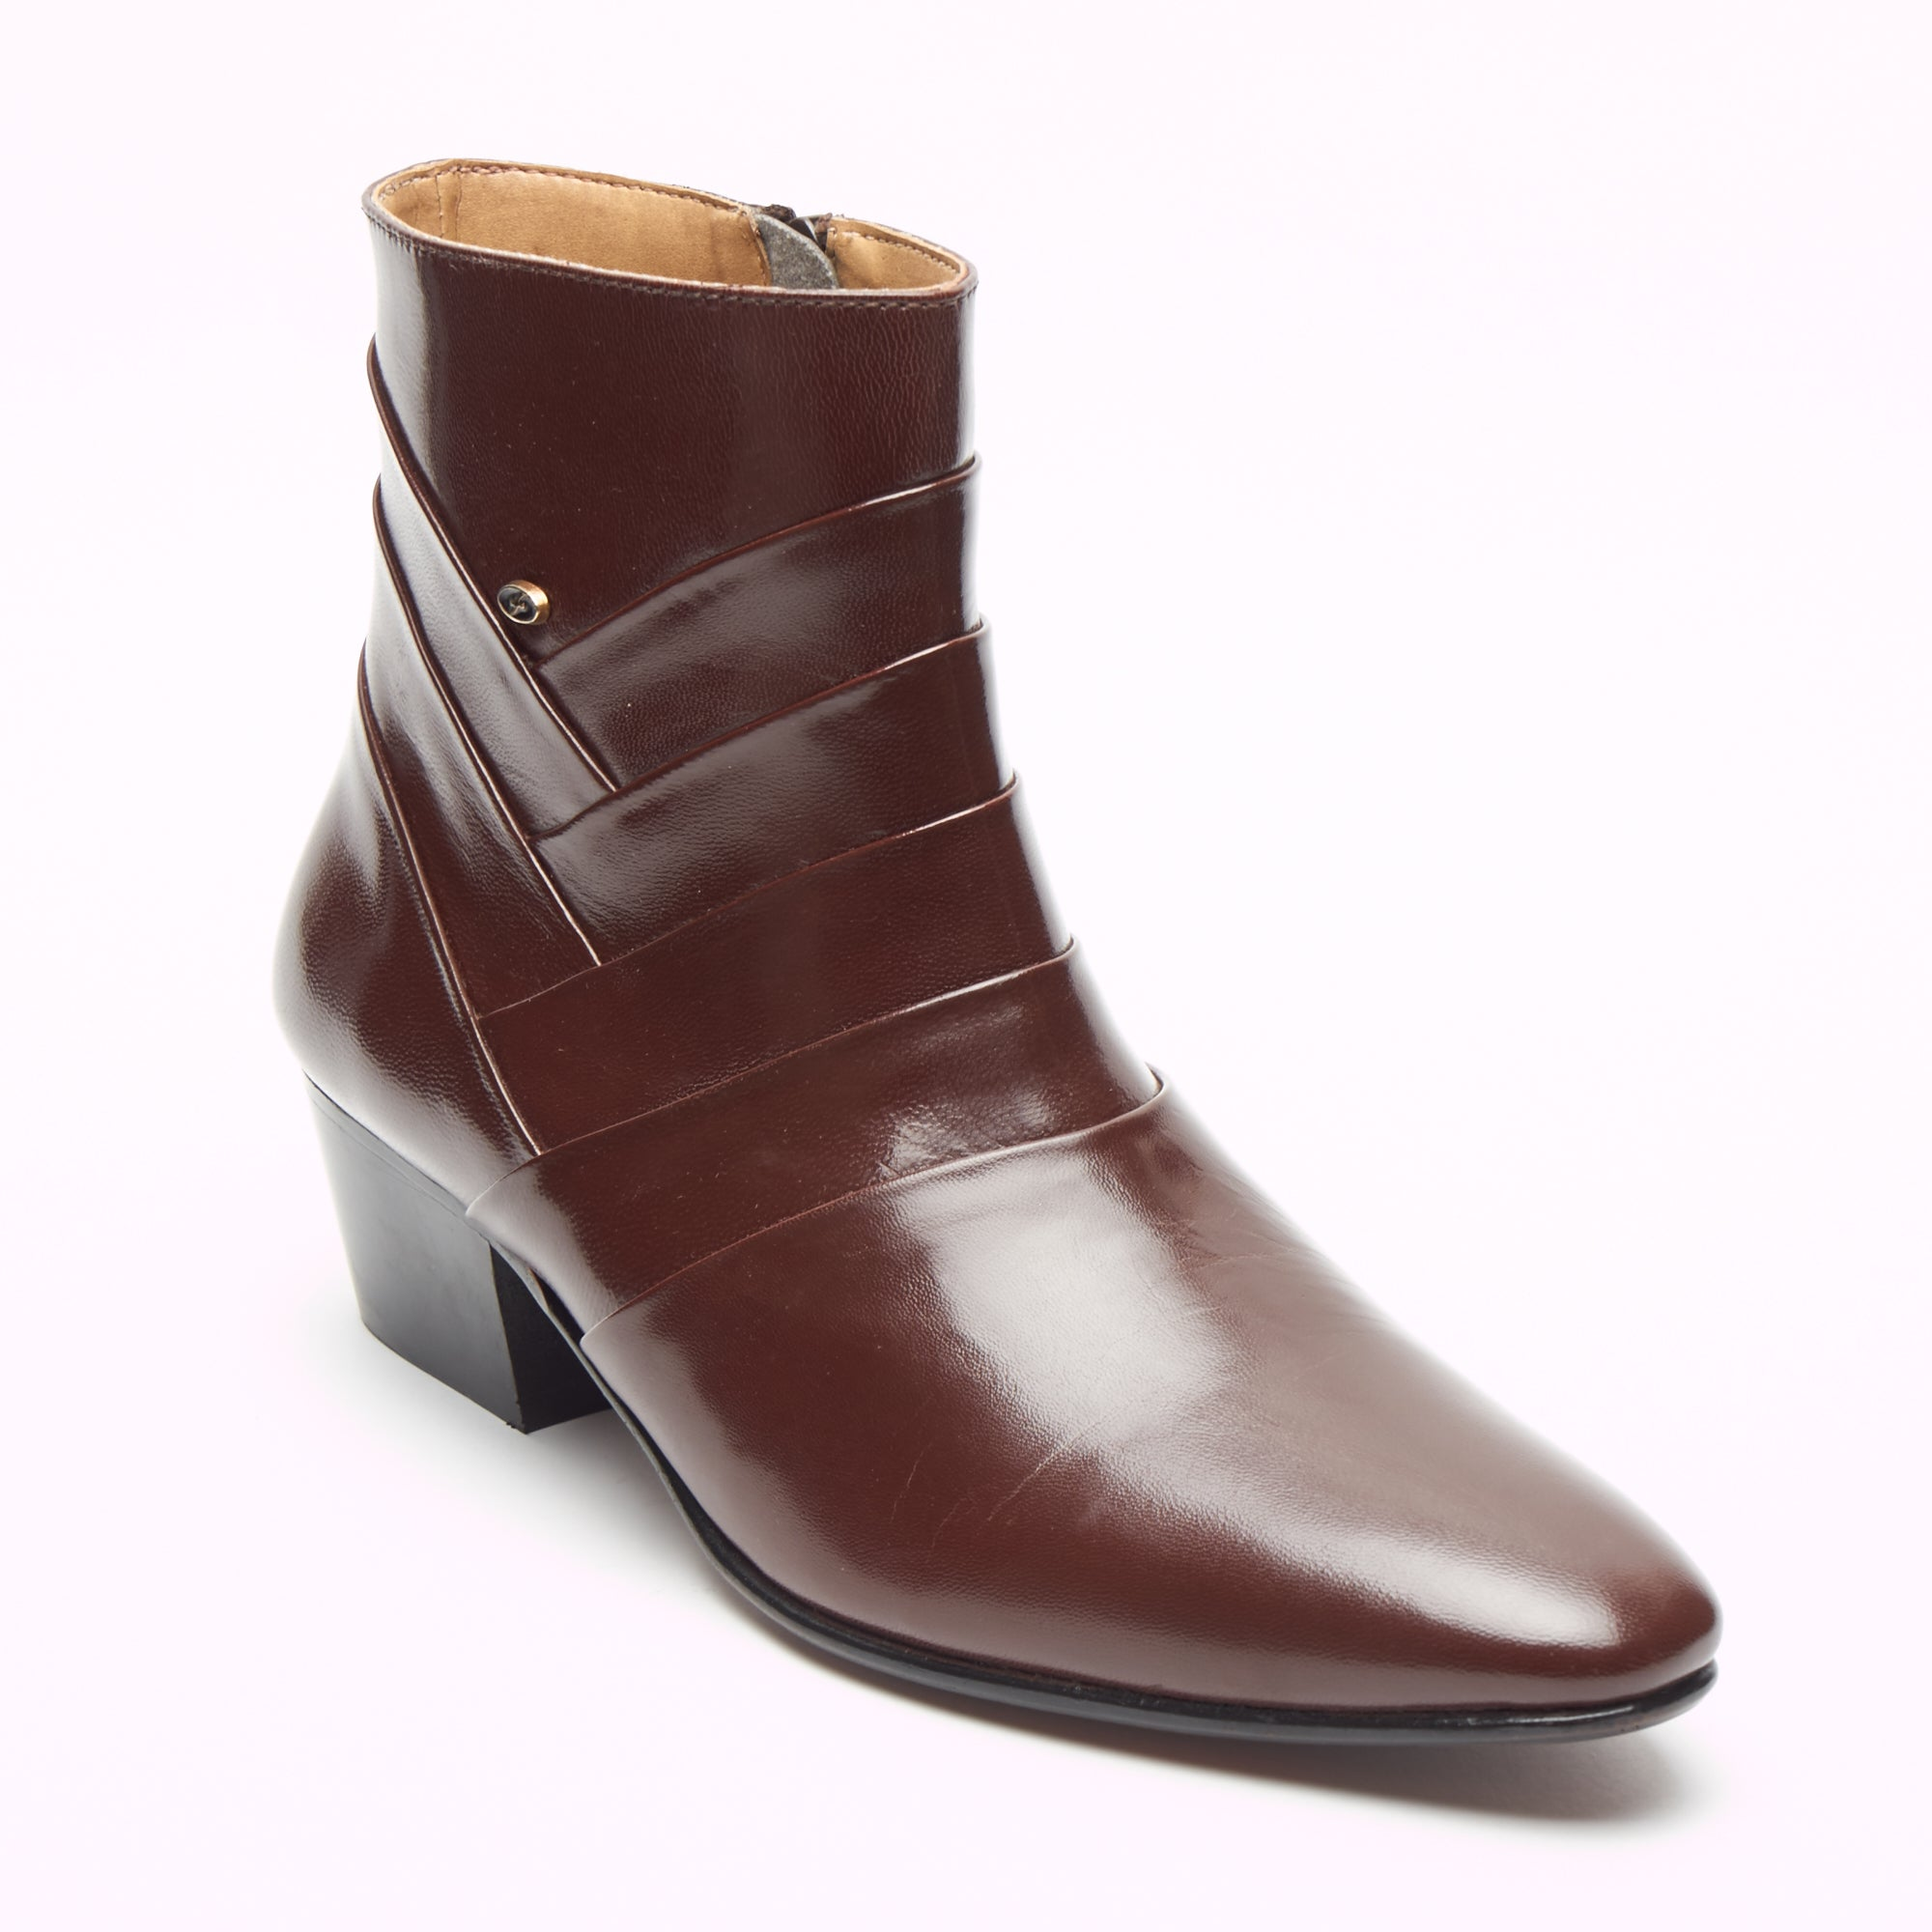 Mens Cuban Heel Leather Boots - 26288 Brown